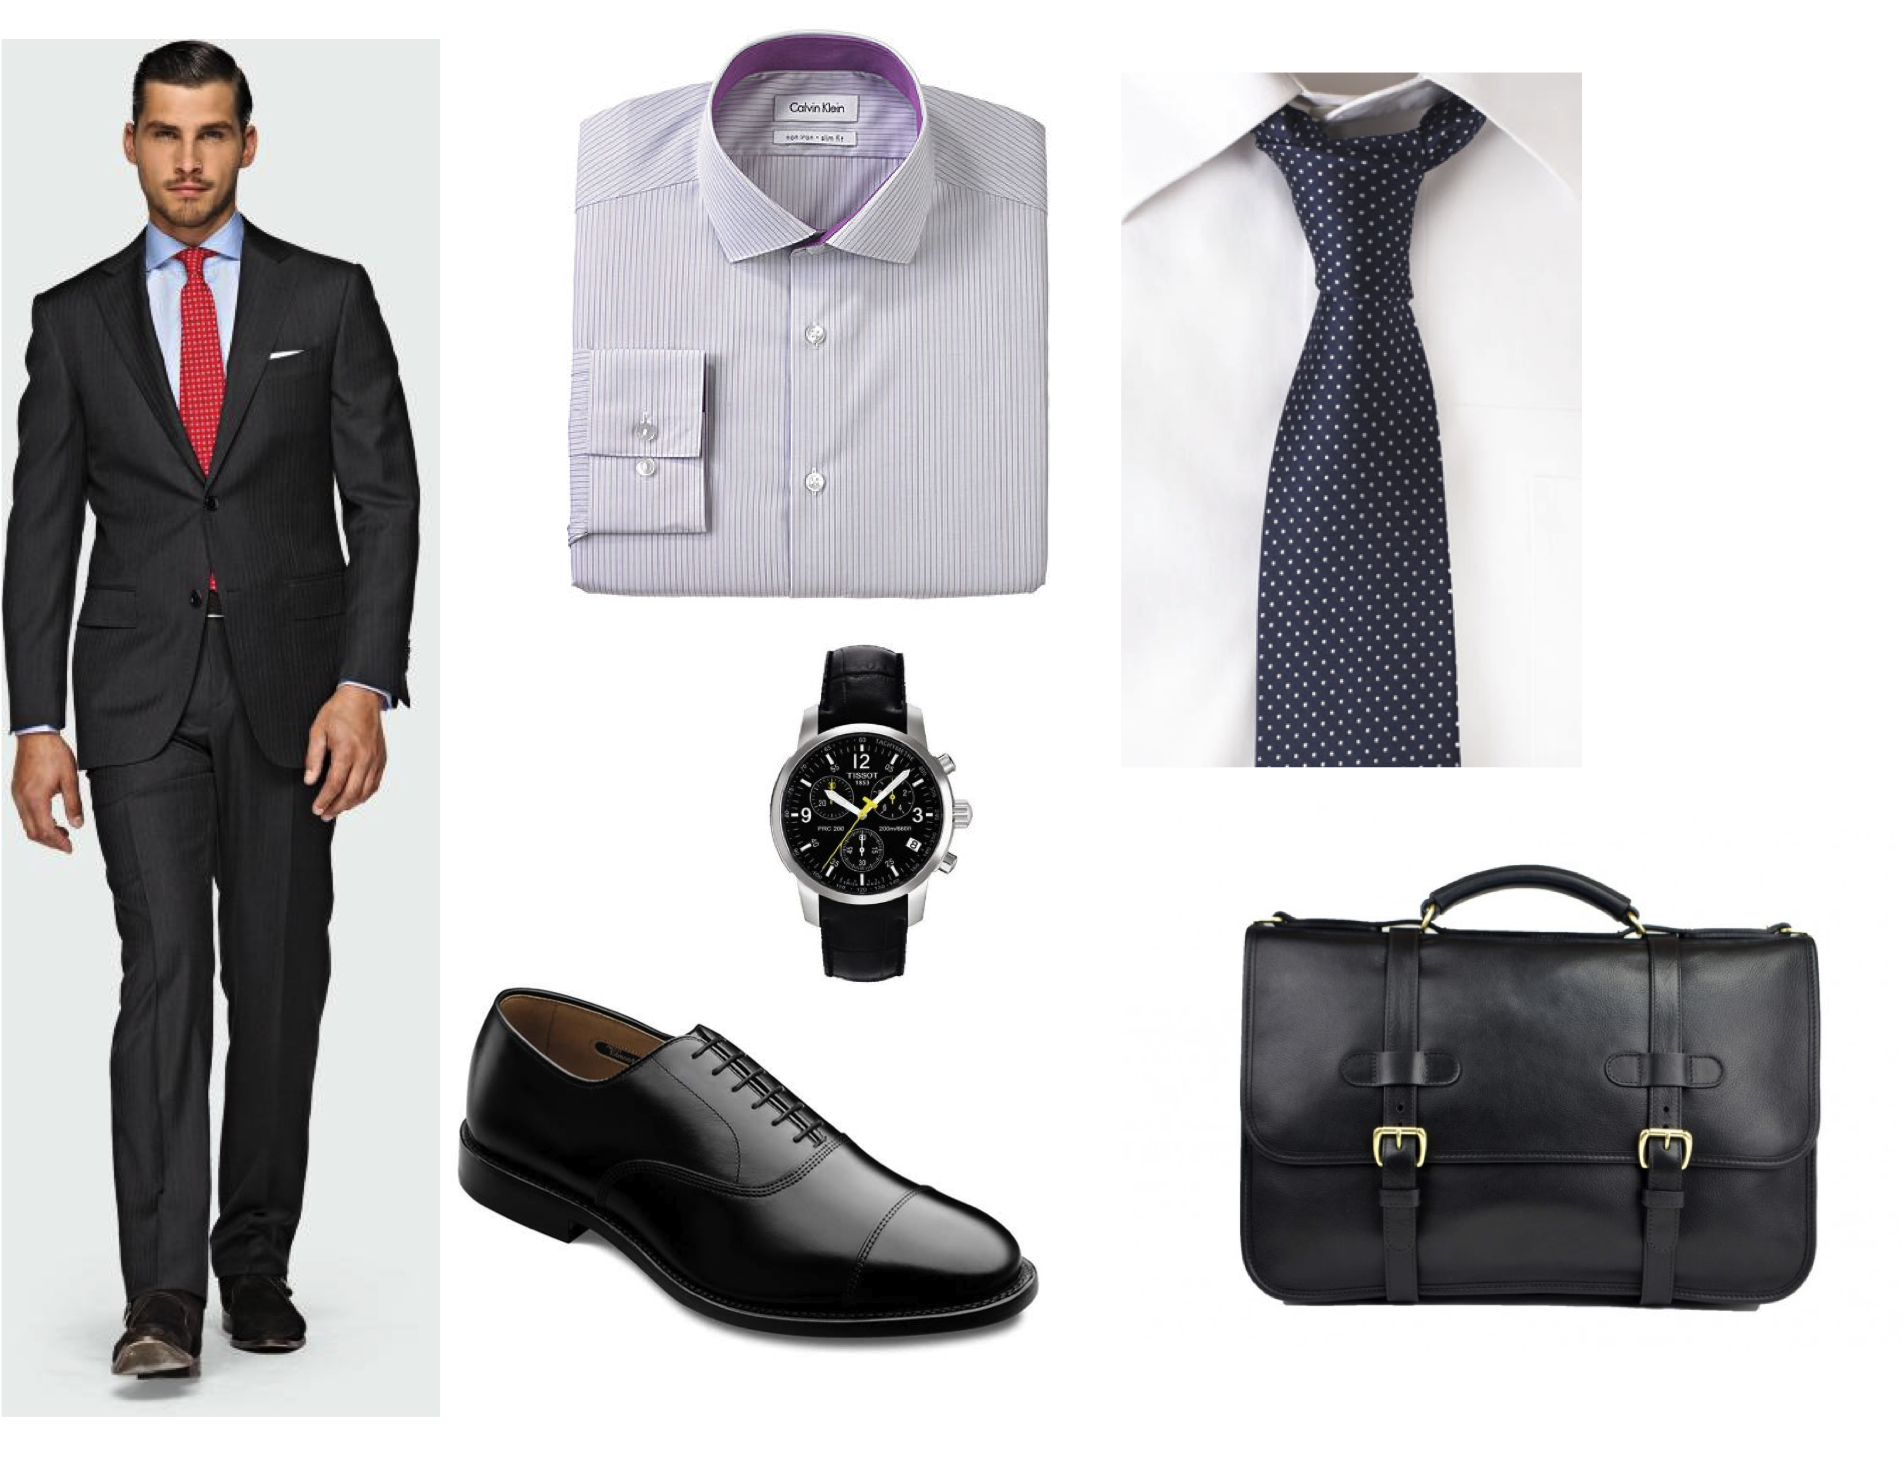 interview outfit suit accessories for men fmag com interview outfit suit accessories for men